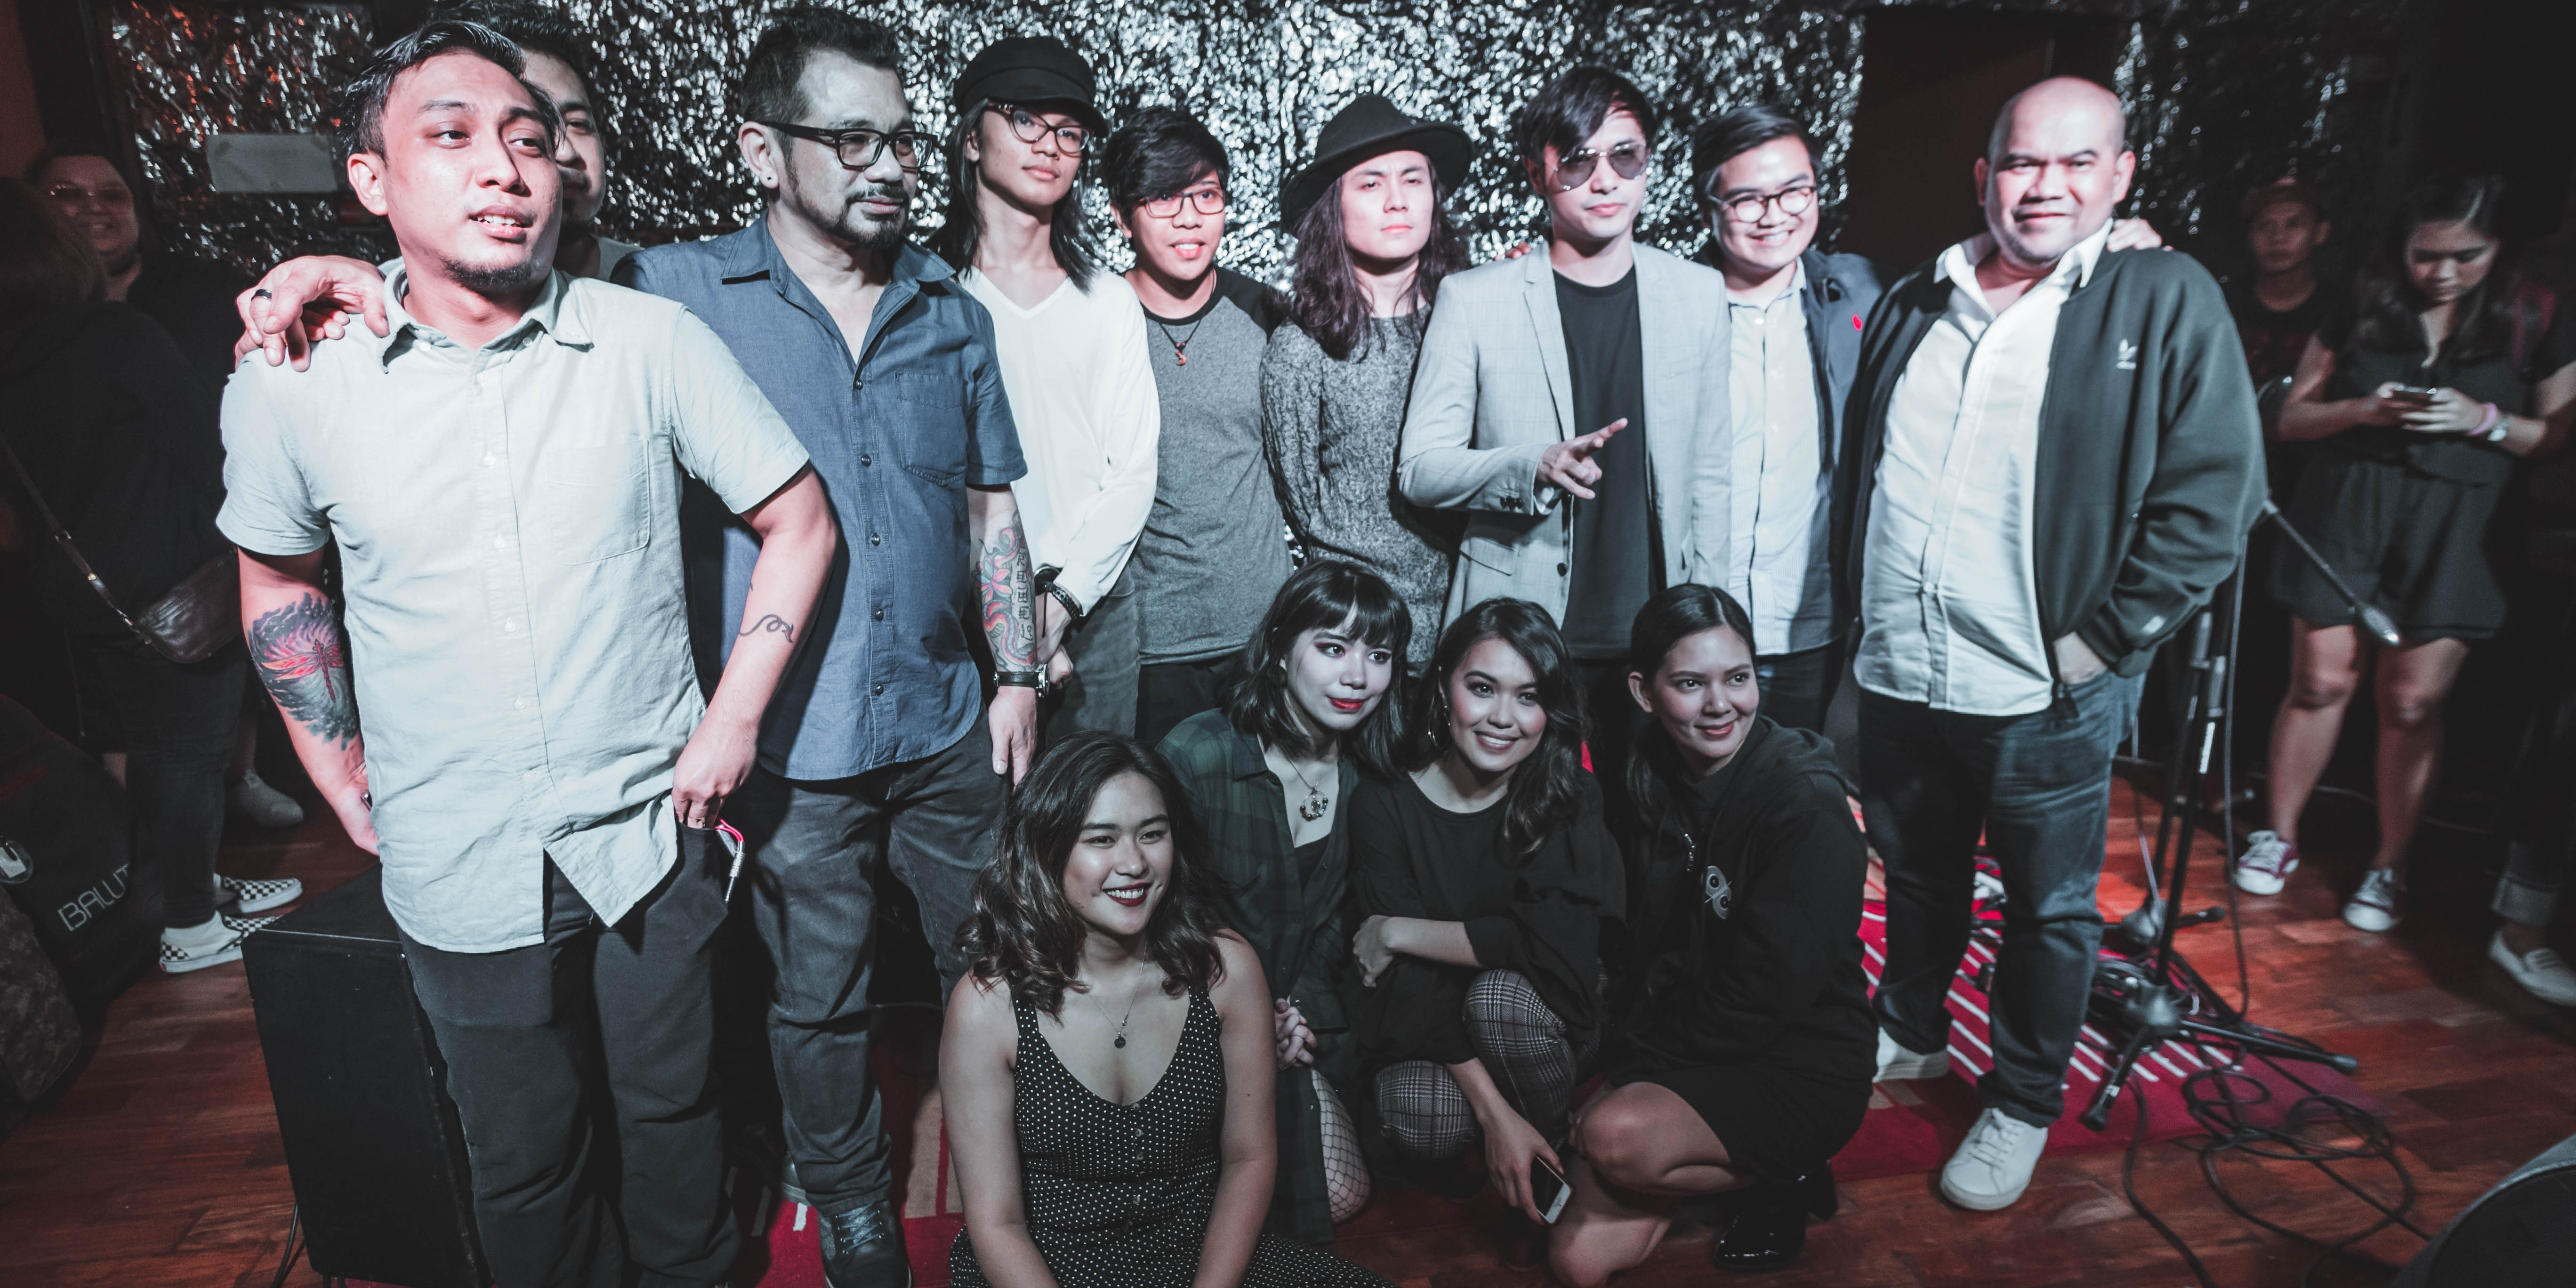 """Kean Cipriano: """"O/C Records gives creative freedom for what our musicians create. It's their art, we should take care of it."""""""